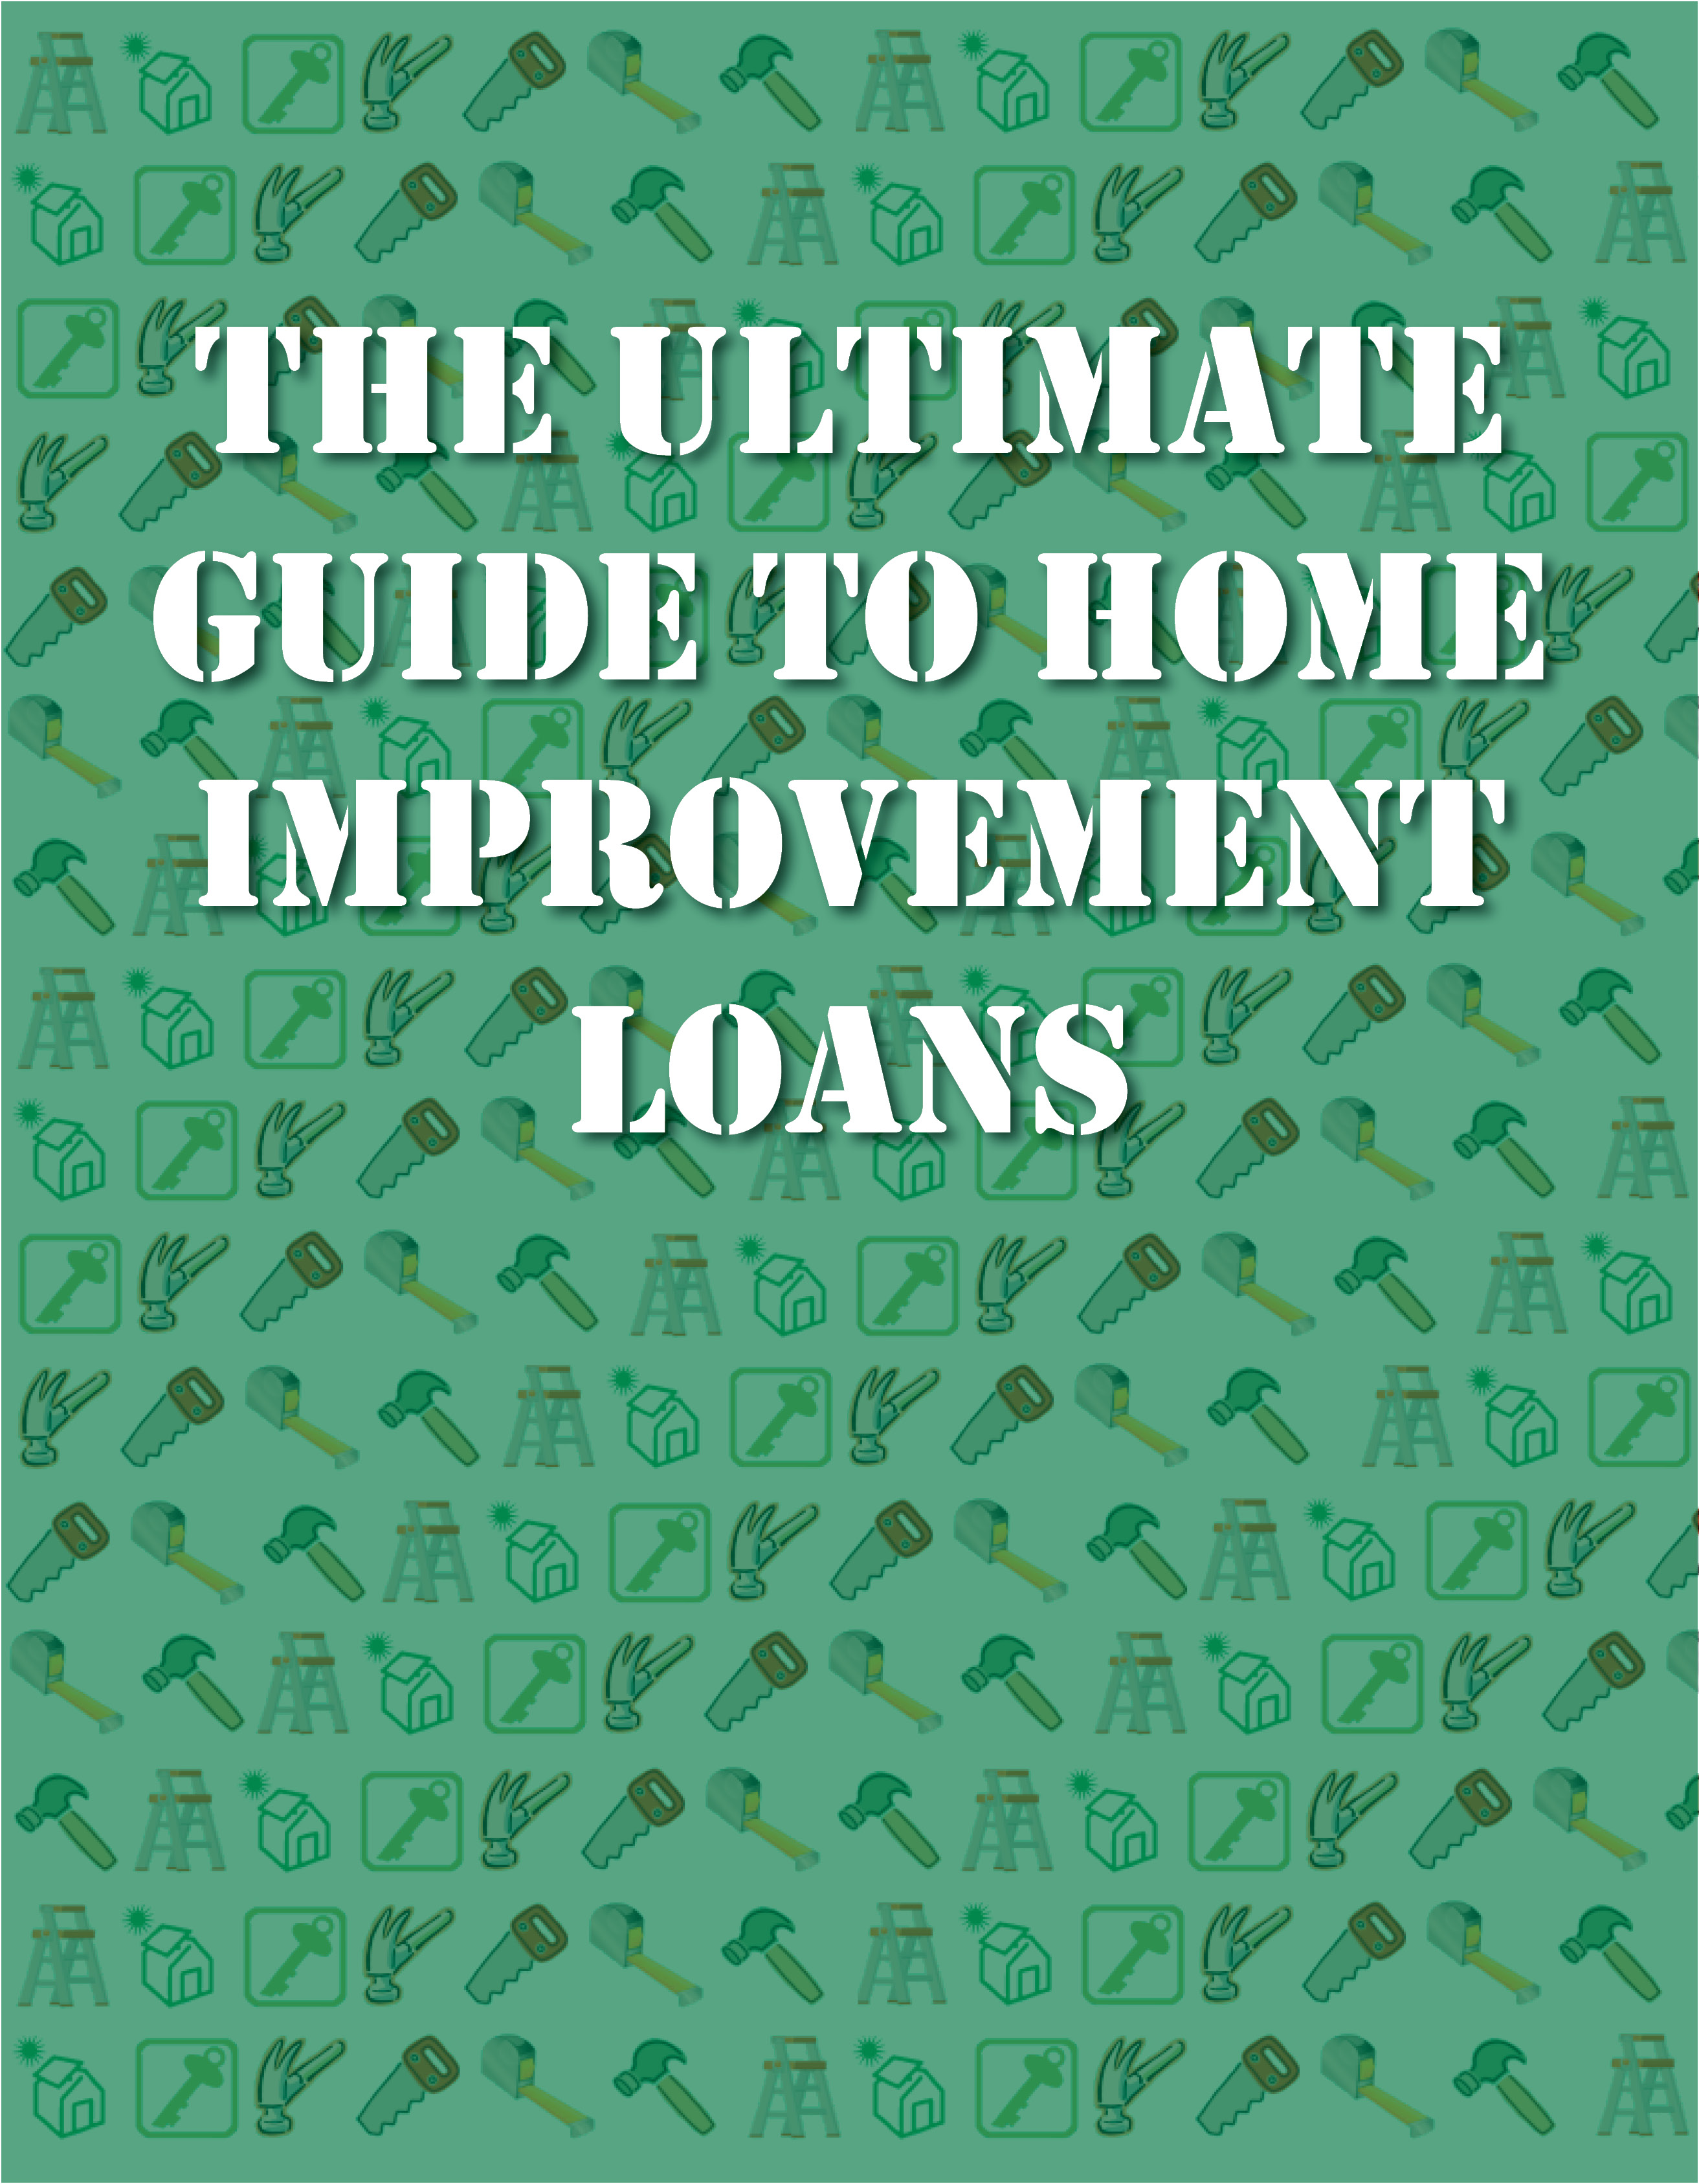 The-Ultimate-Guide-to-Home-Improvement-Loans-cover-resized-275